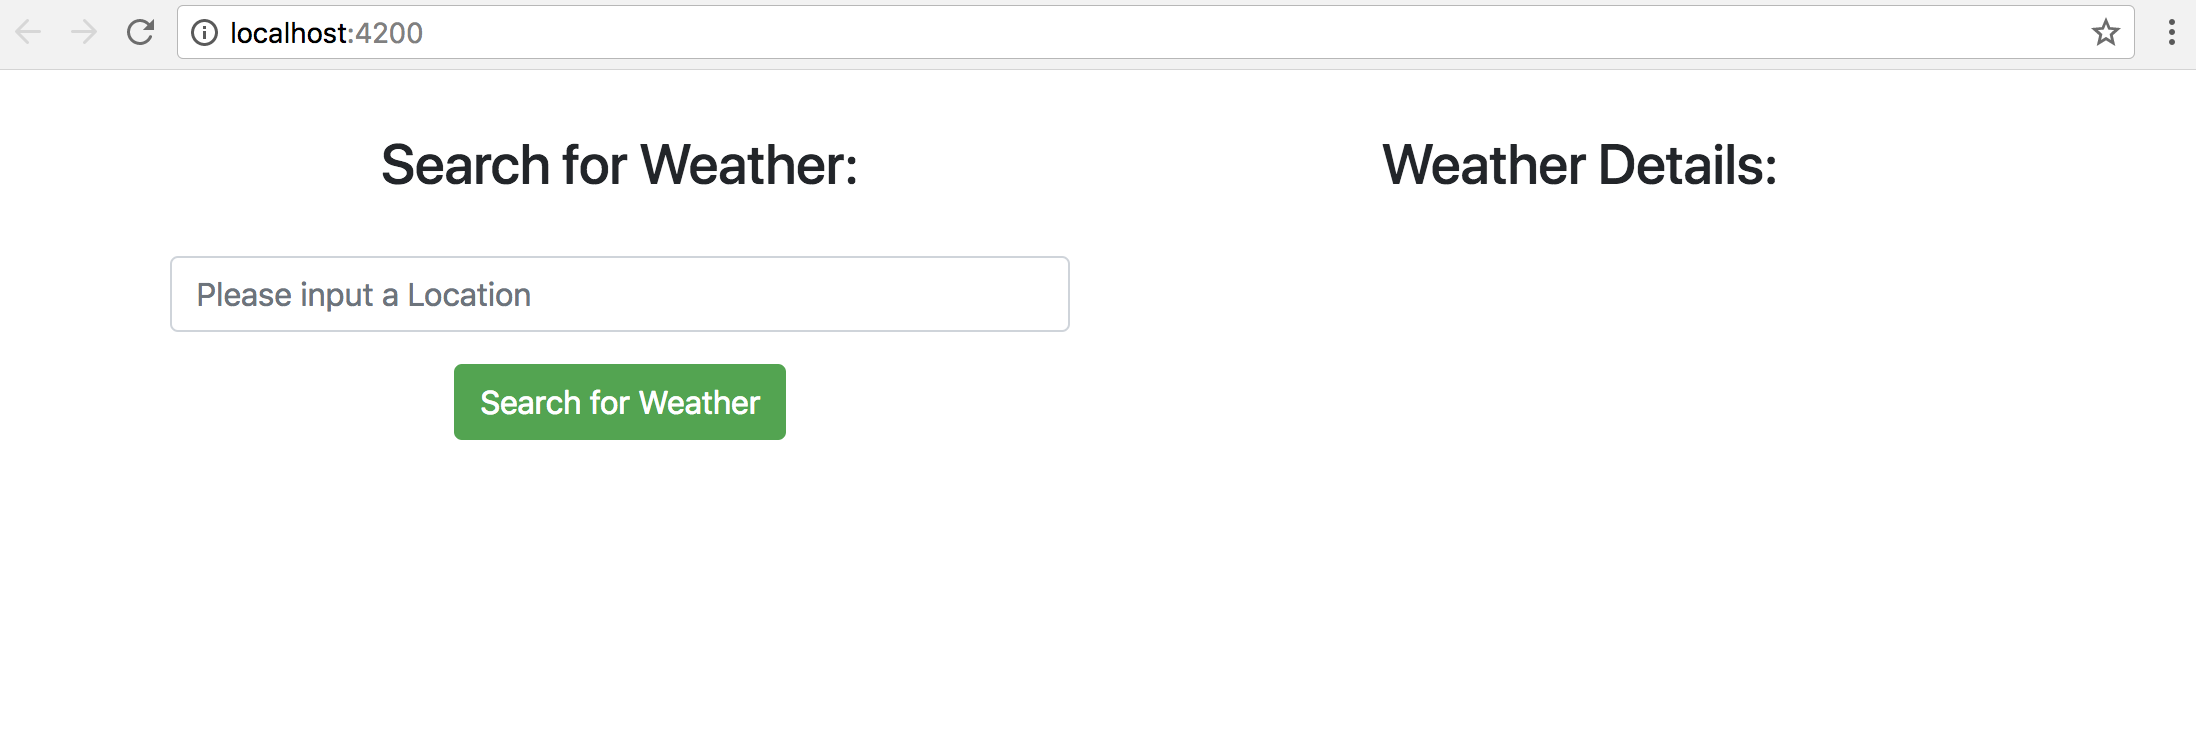 How To Build a Weather App with Angular, Bootstrap, and the APIXU